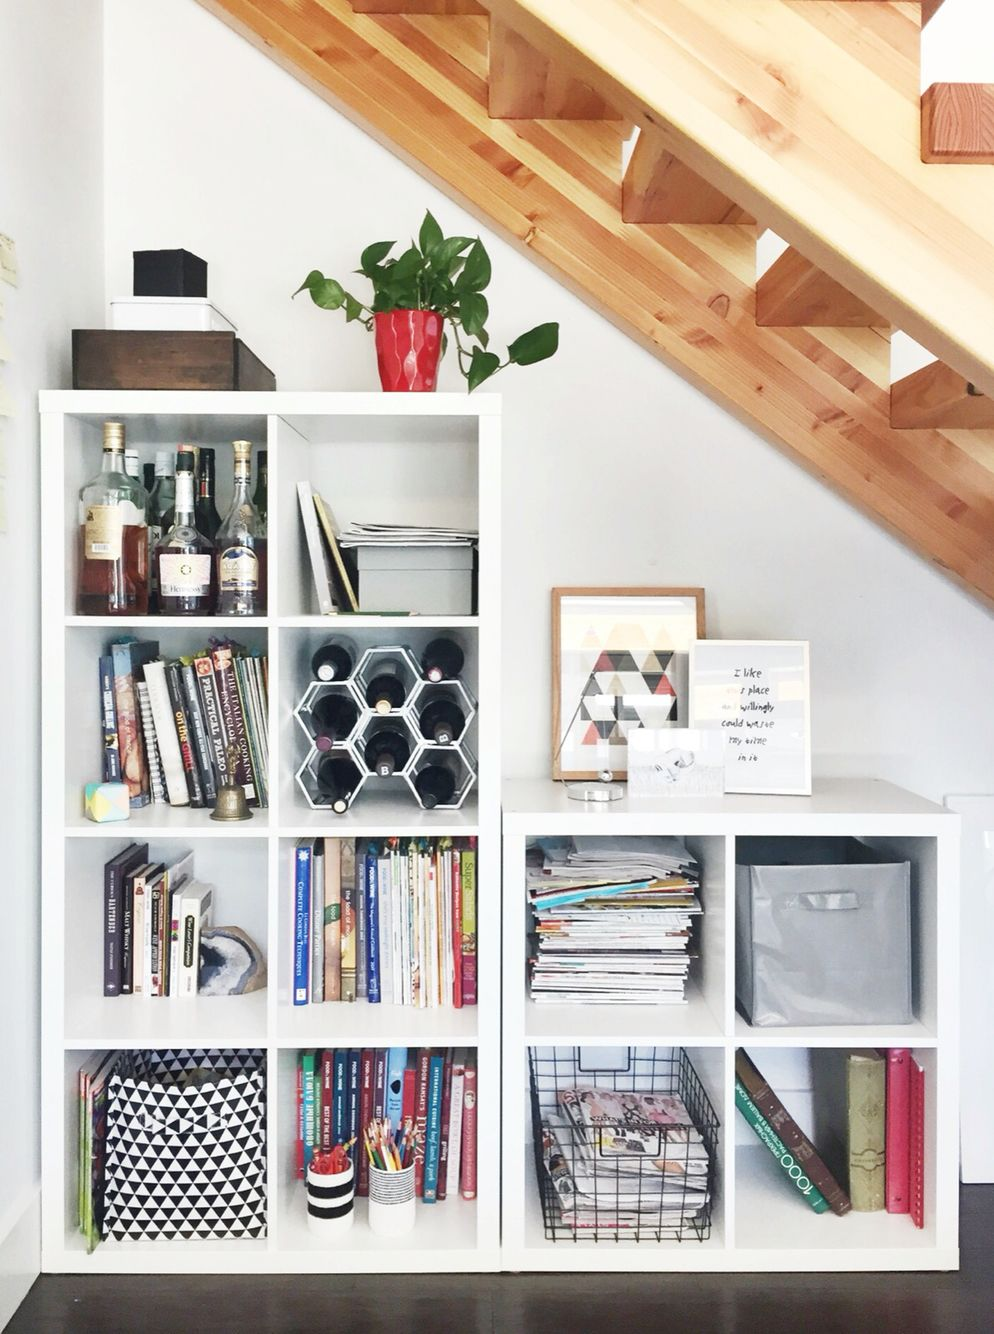 Space saving storage under the stairs: ikea kallax system